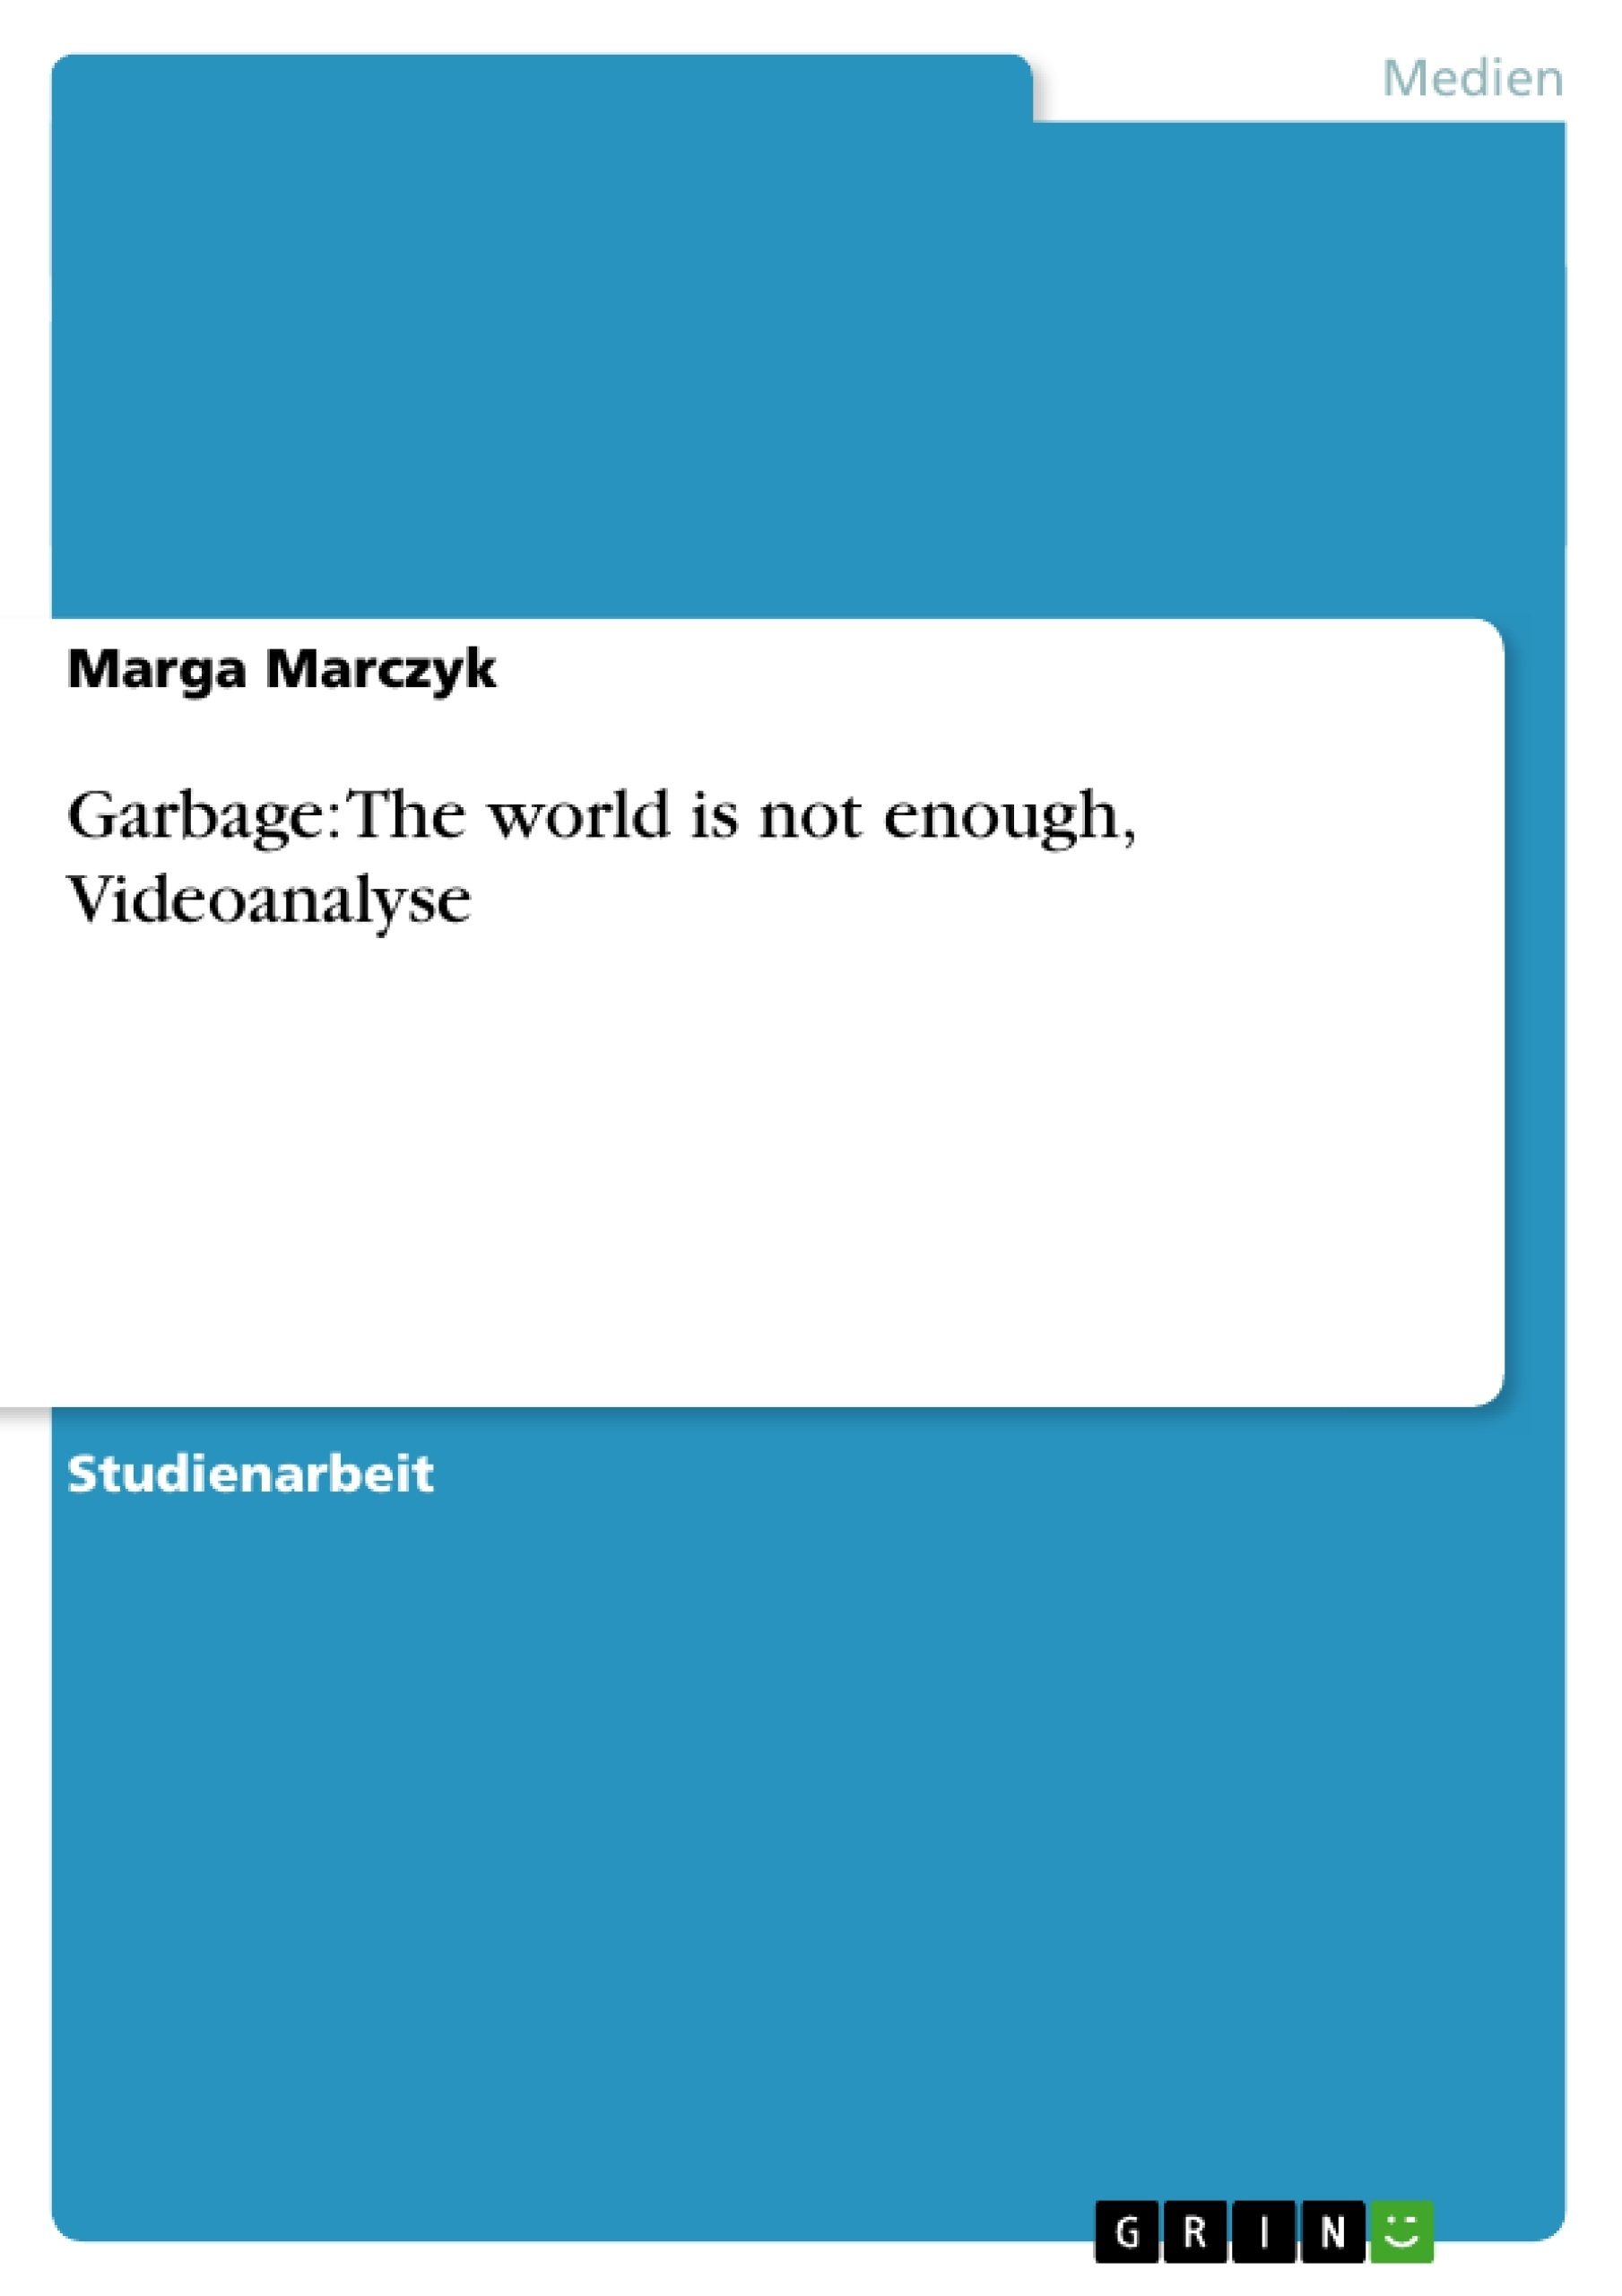 Titel: Garbage: The world is not enough, Videoanalyse